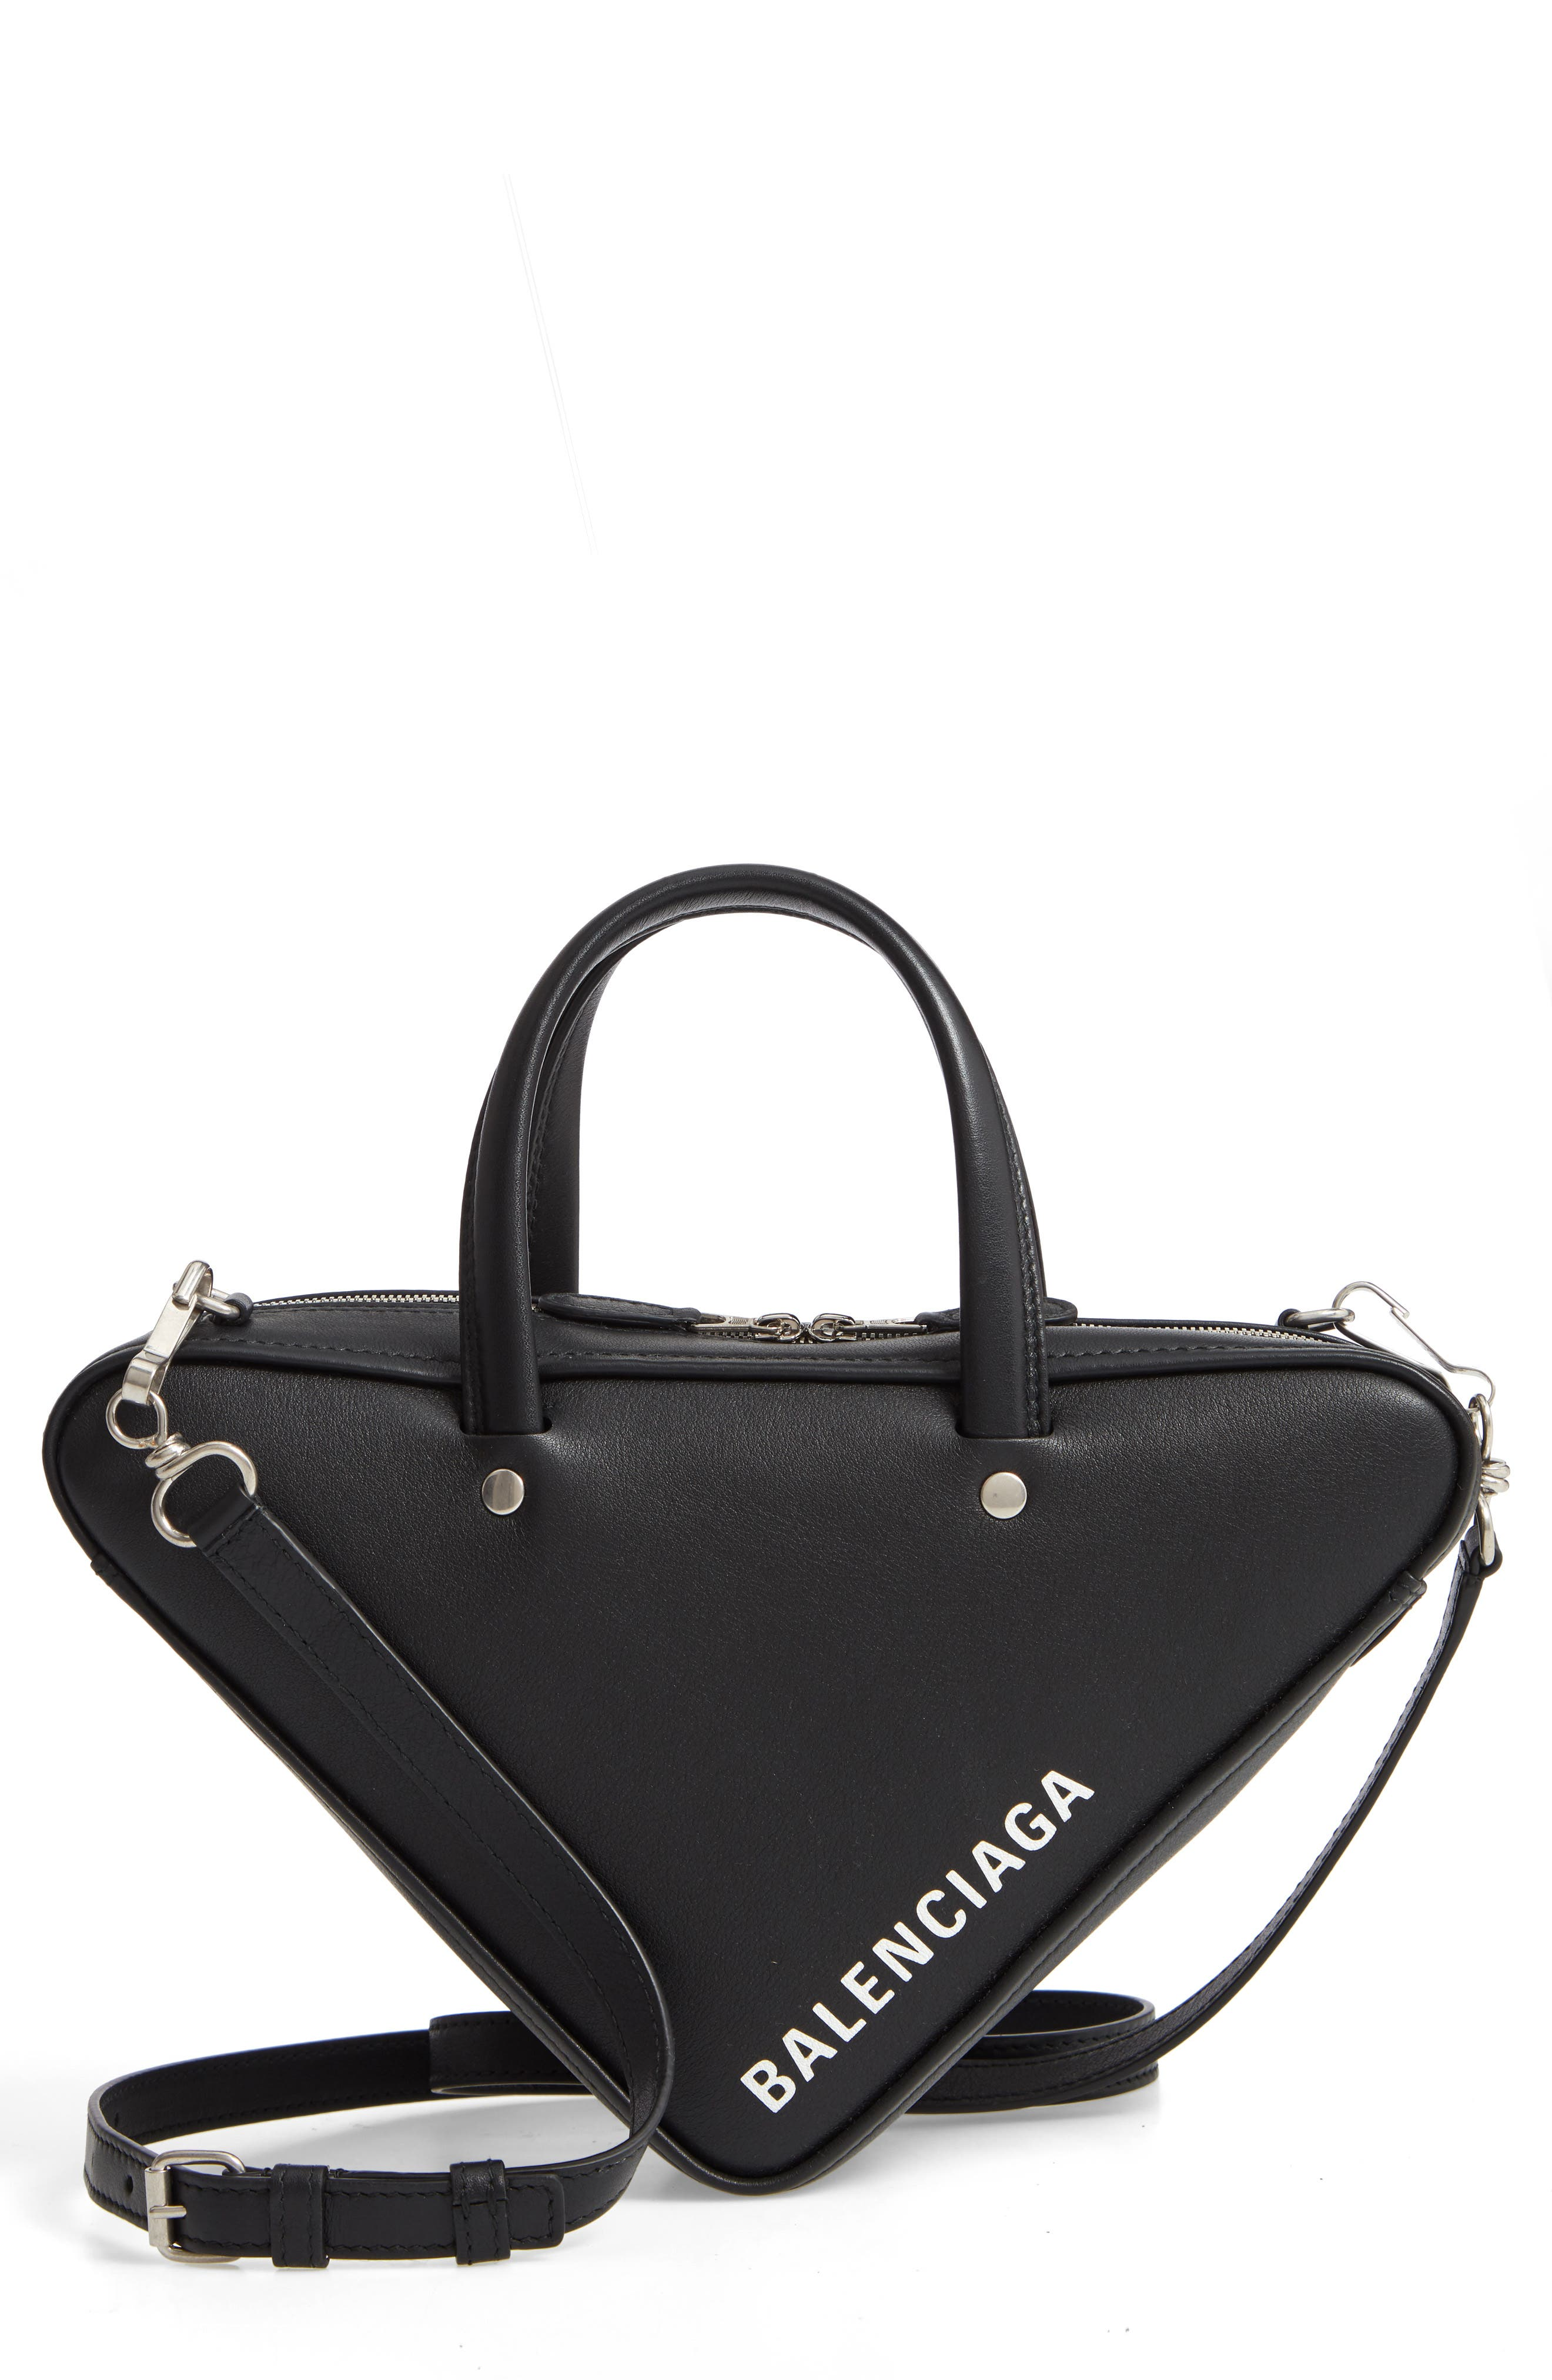 Extra Small Triangle Leather Bag,                             Main thumbnail 1, color,                             NOIR